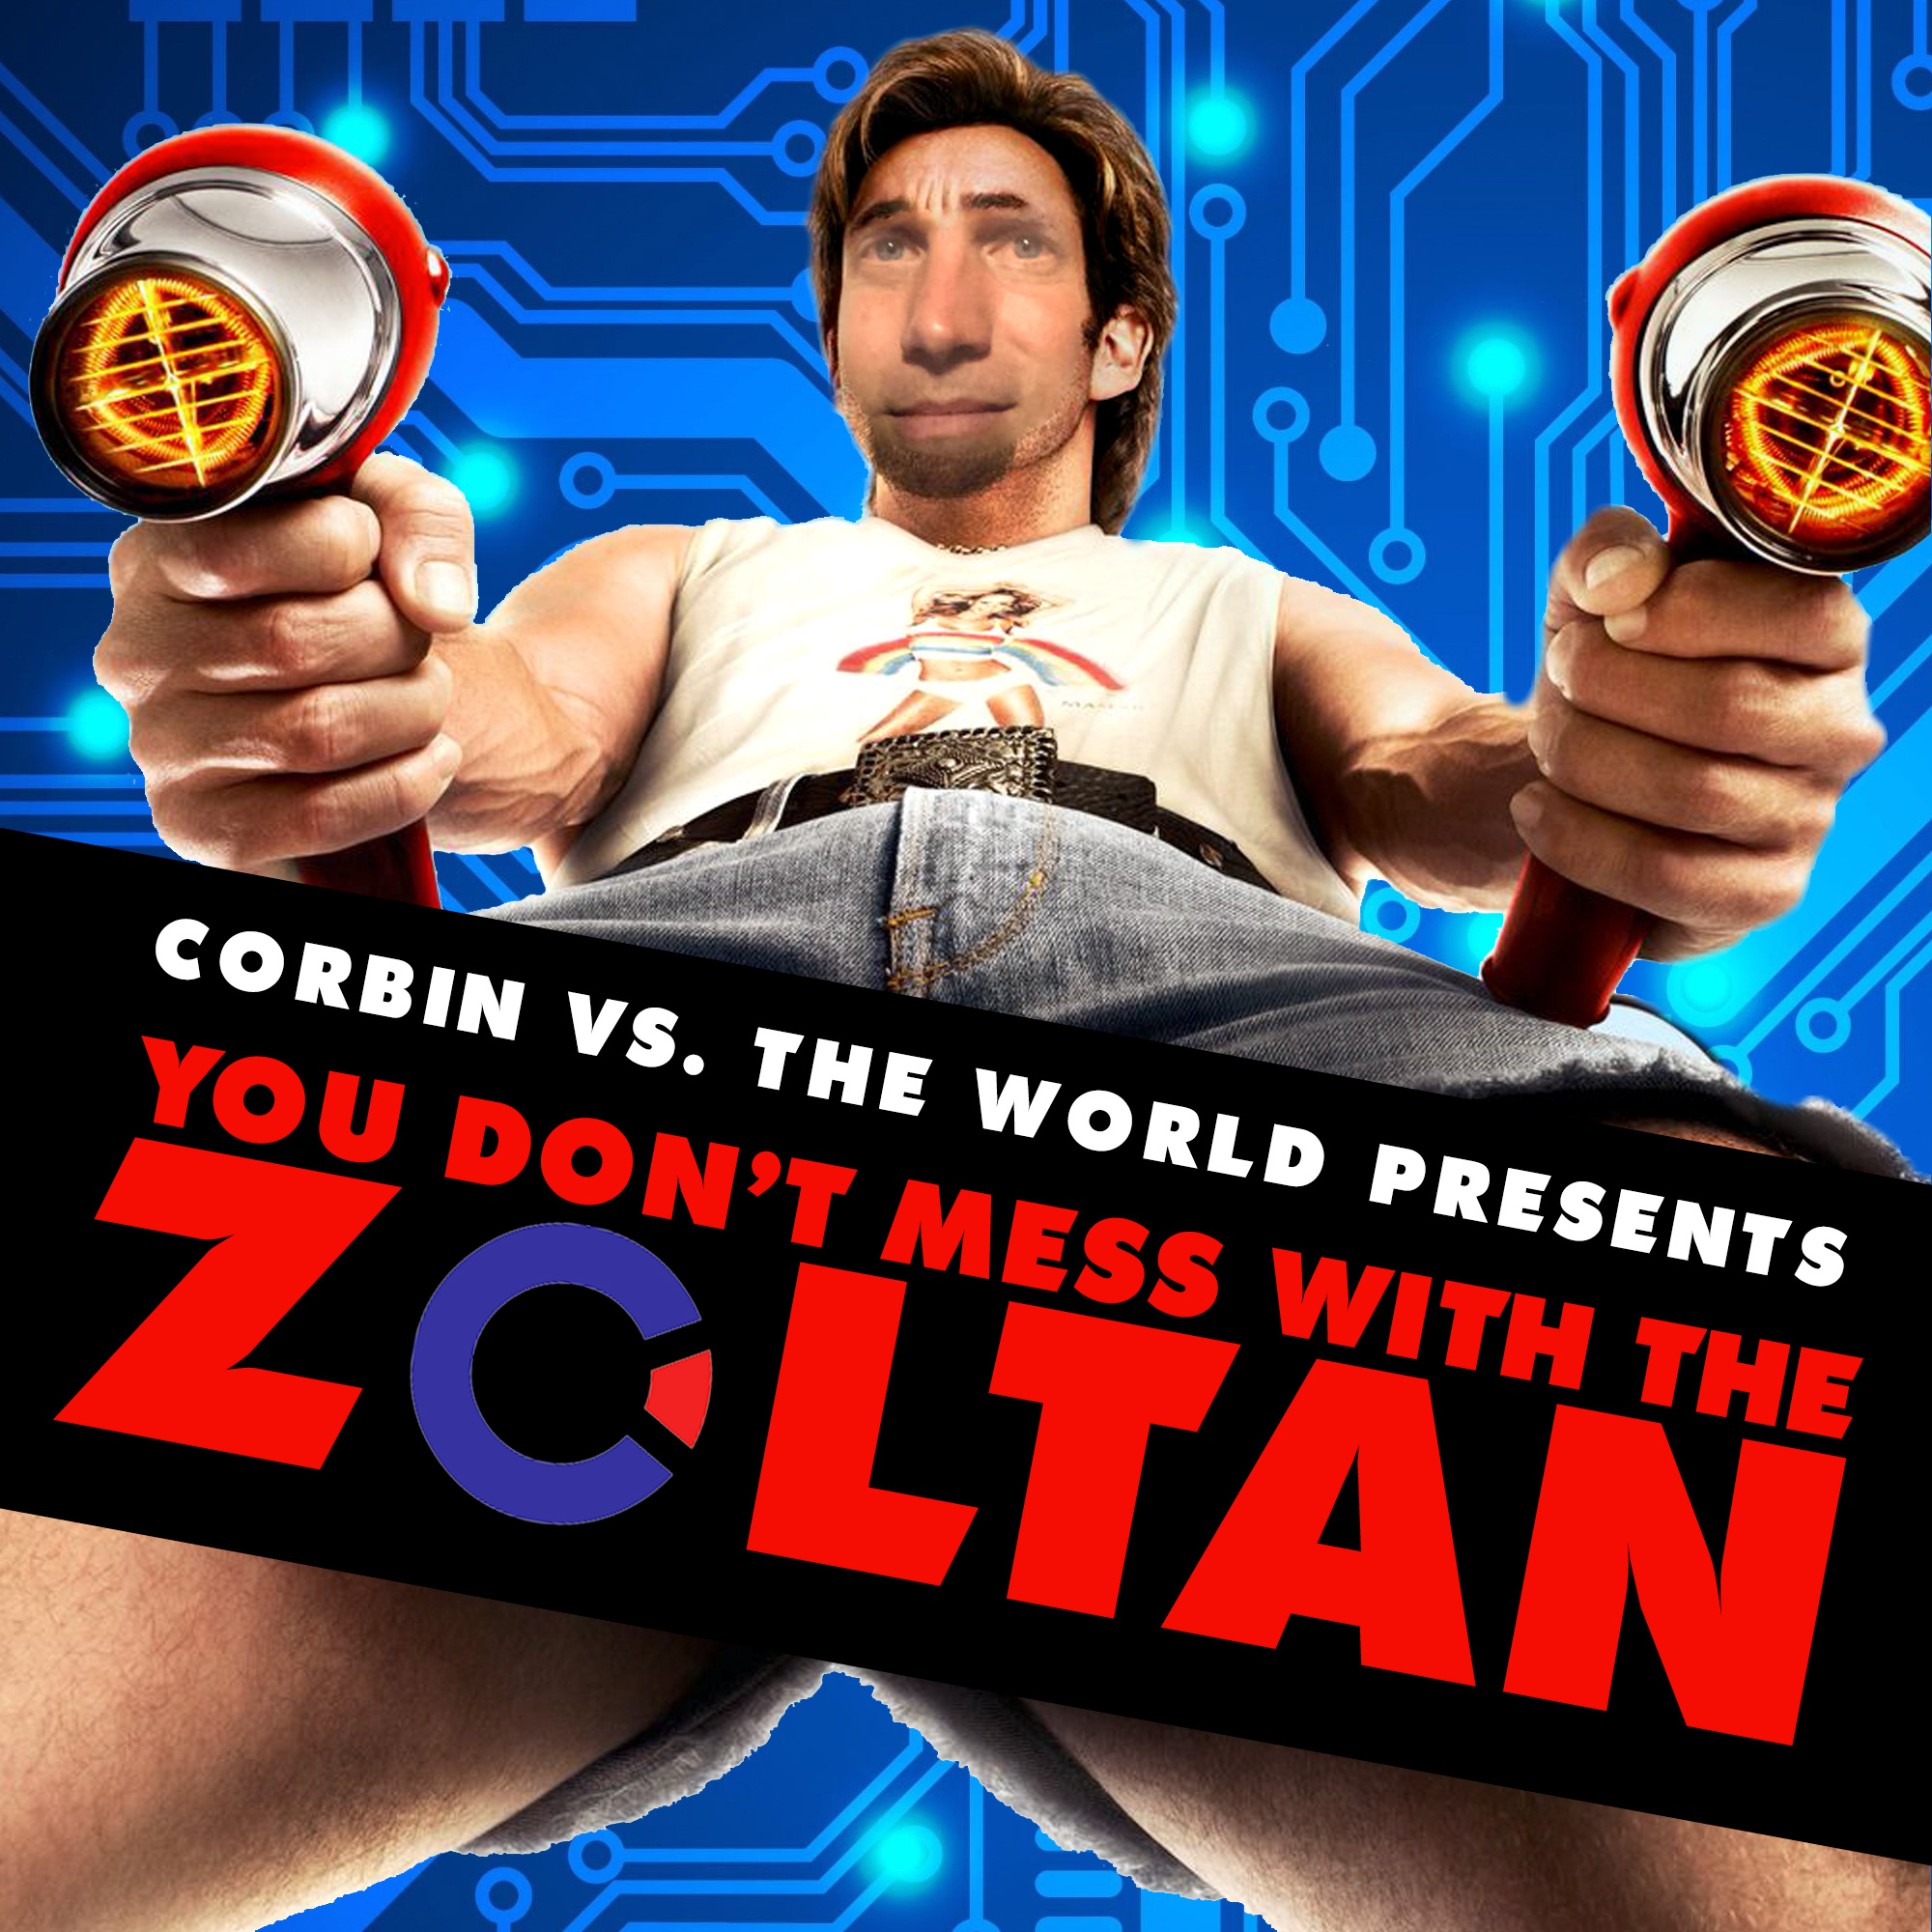 CVTW 071: Don't Mess with the Zoltan